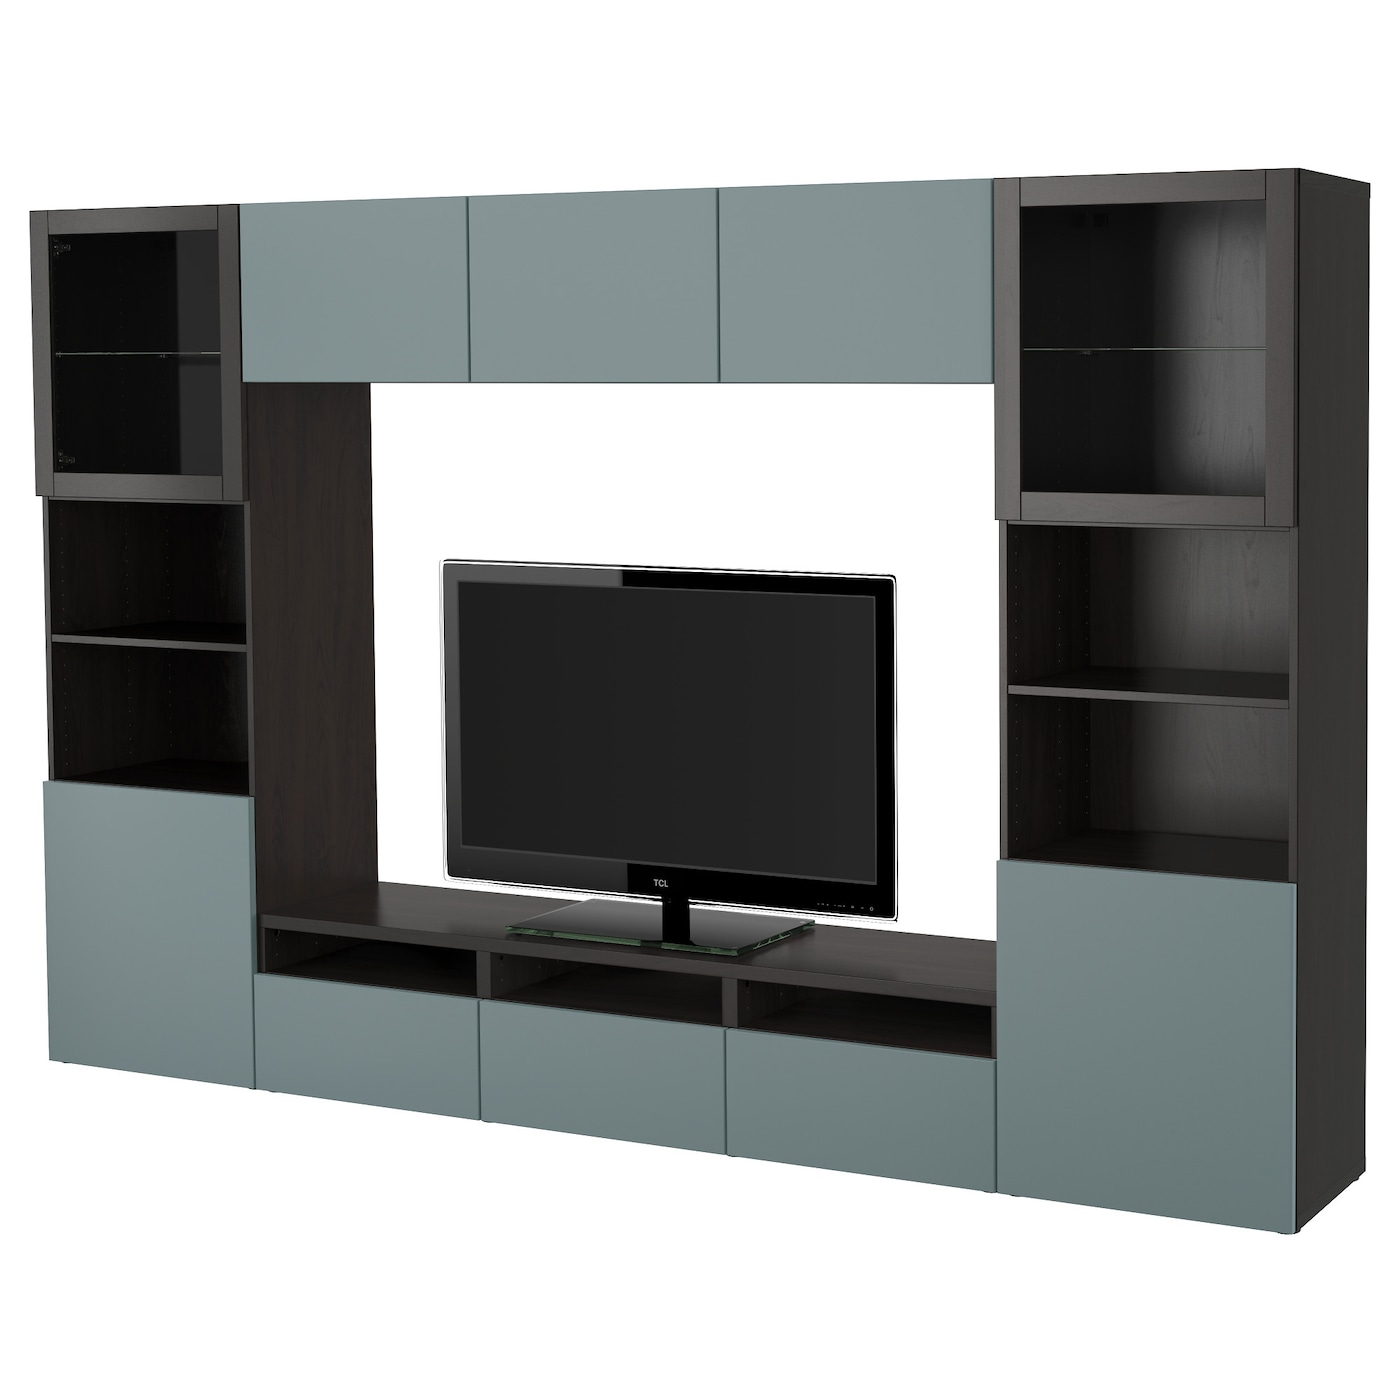 best tv storage combination glass doors black brown valviken grey turquoise clear glass. Black Bedroom Furniture Sets. Home Design Ideas